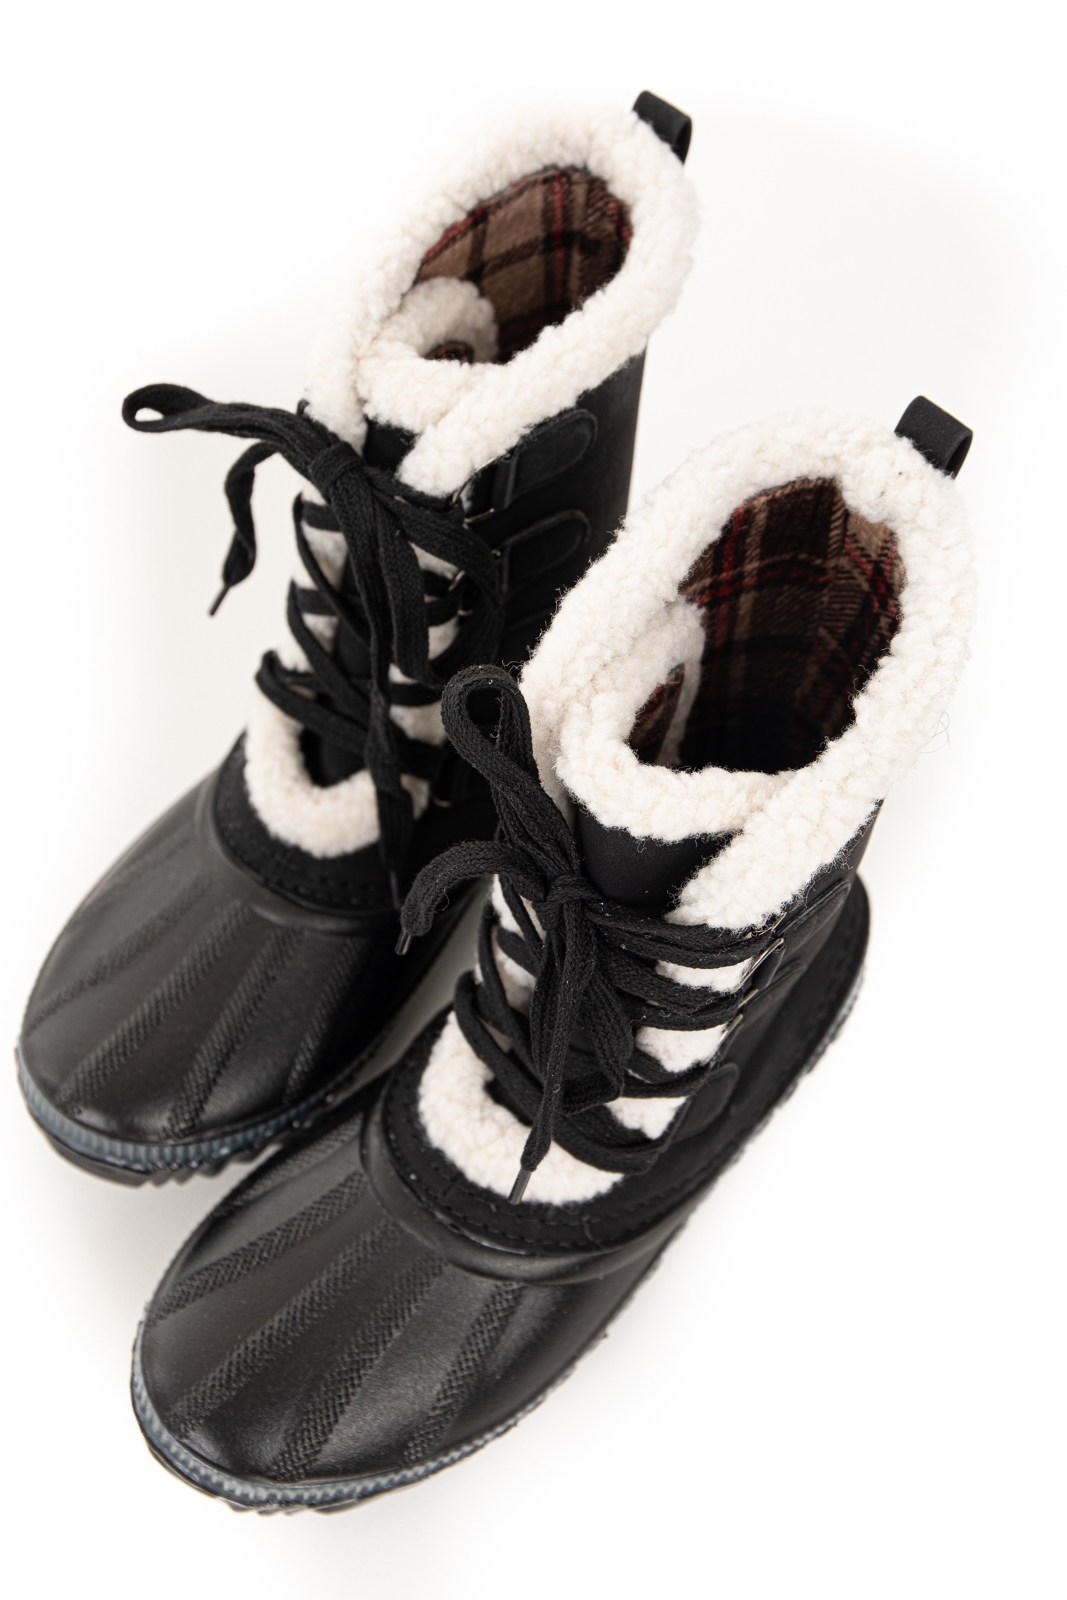 Black Lace Up Snow Boots with Plaid and Faux Fur Lining